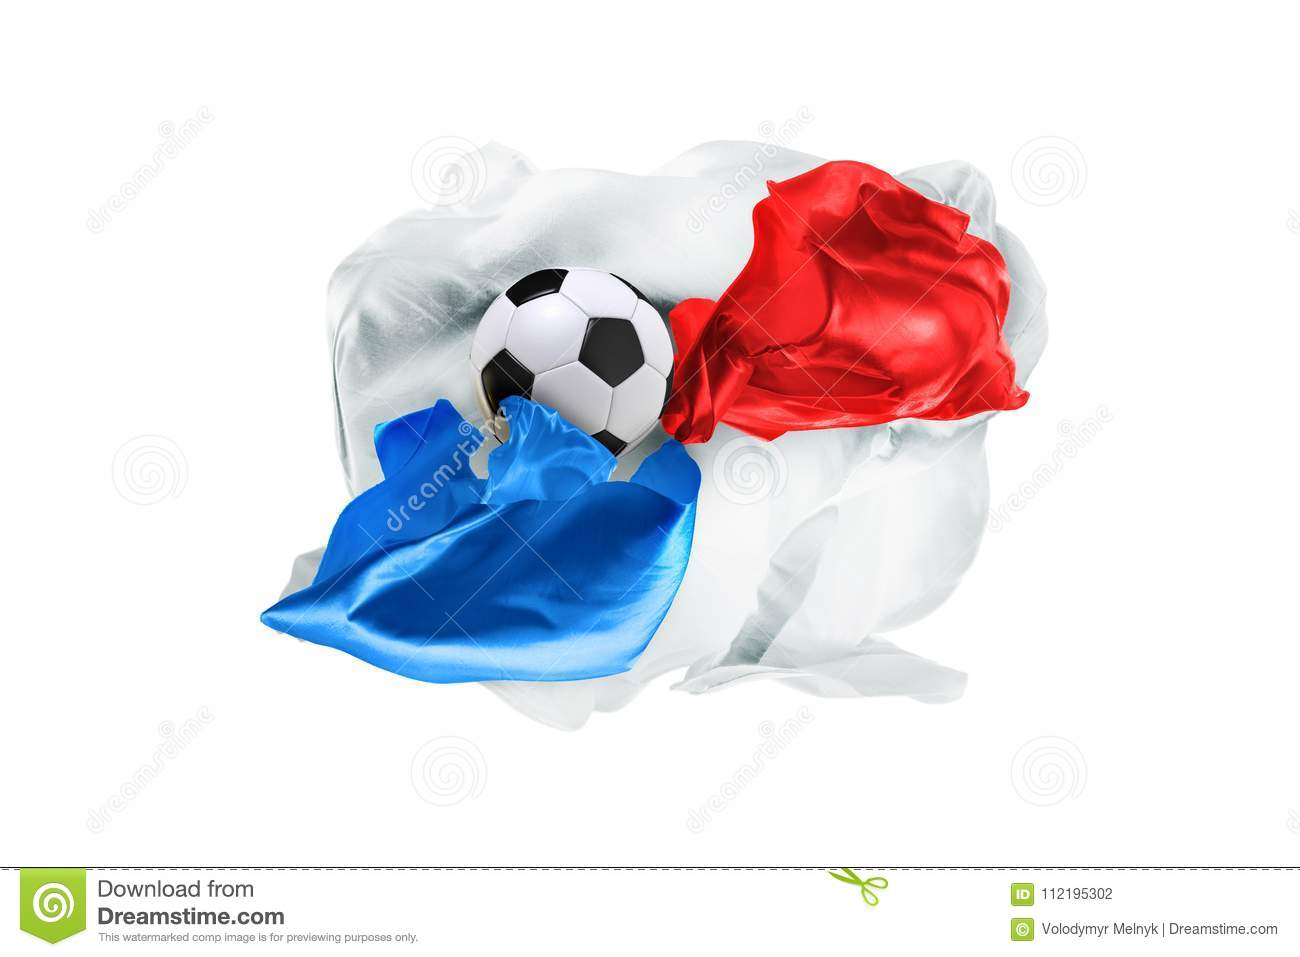 The national flag of Panama. FIFA World Cup. Russia 2018